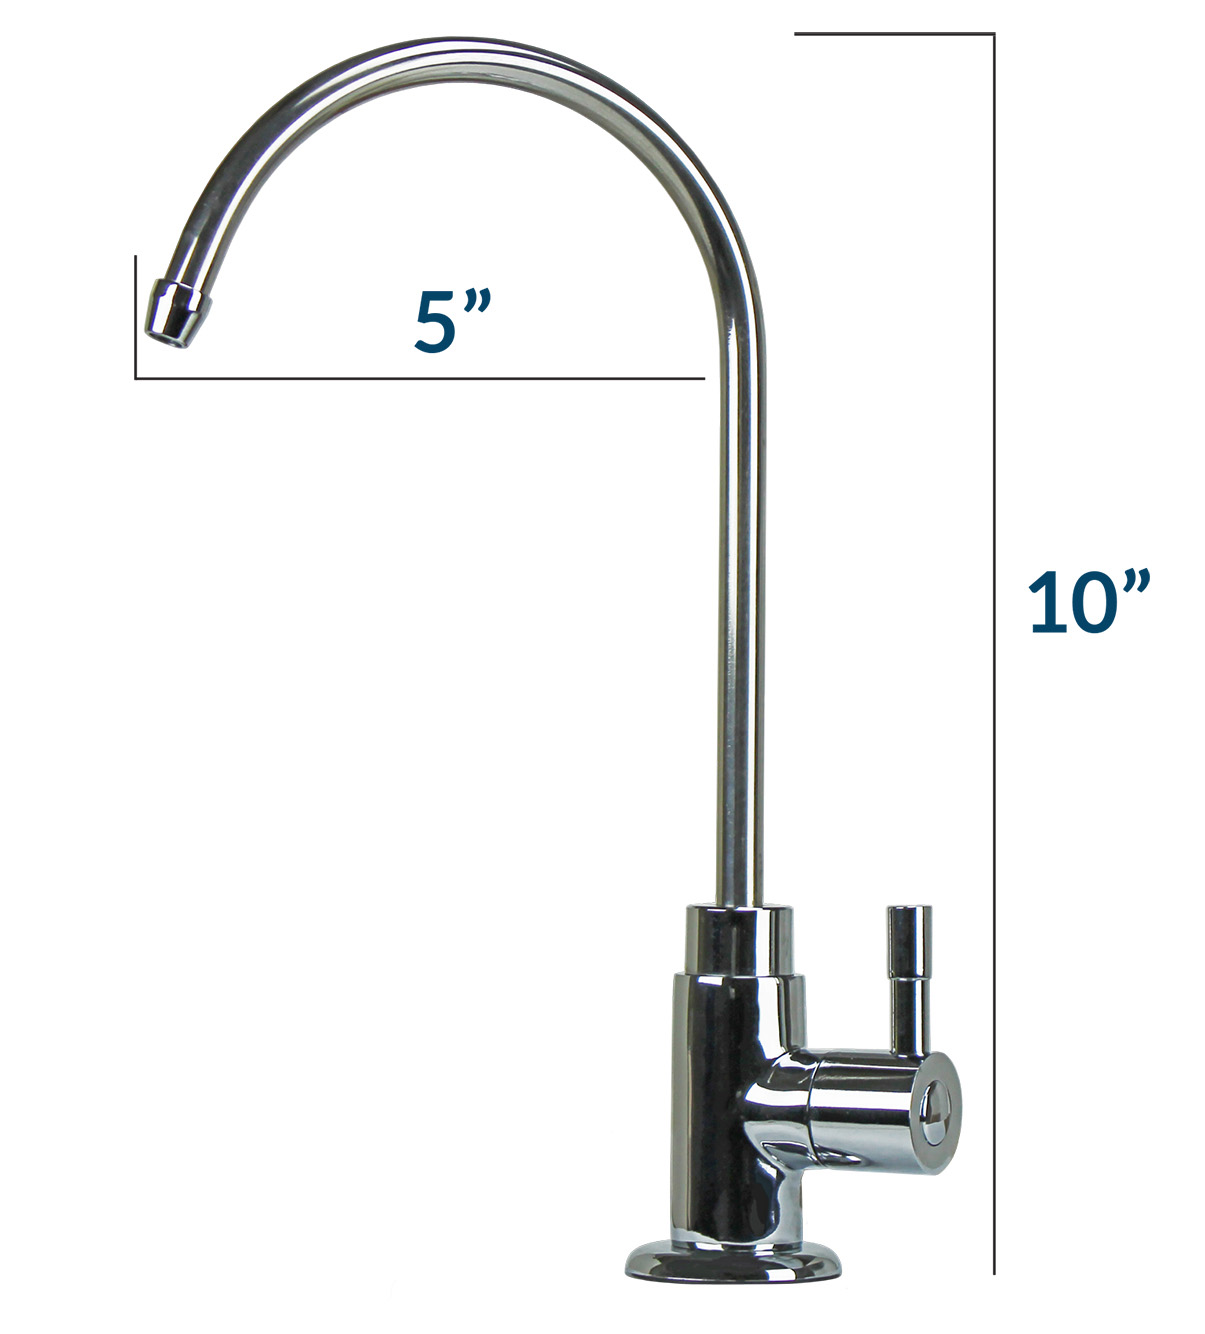 Reverse osmosis system chrome finish faucet kit olympia for Faucet finishes